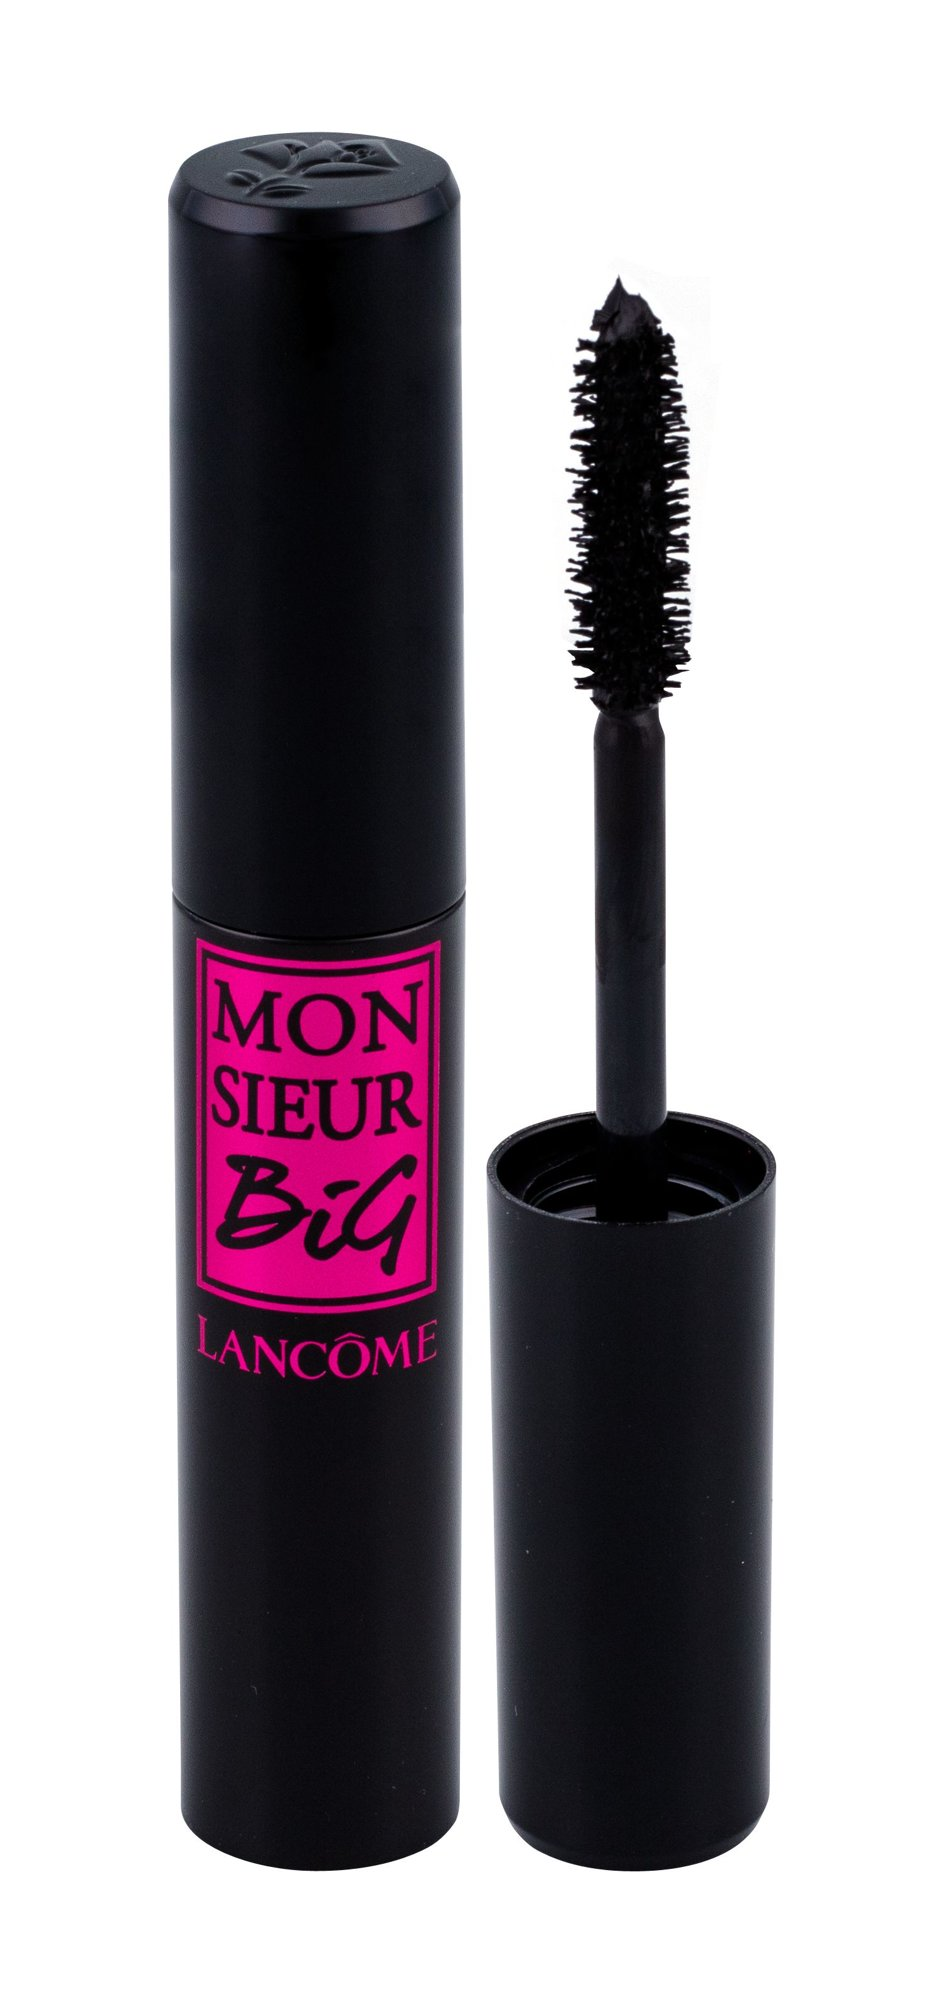 Lancôme Monsieur Big Cosmetic 10ml 01 Black